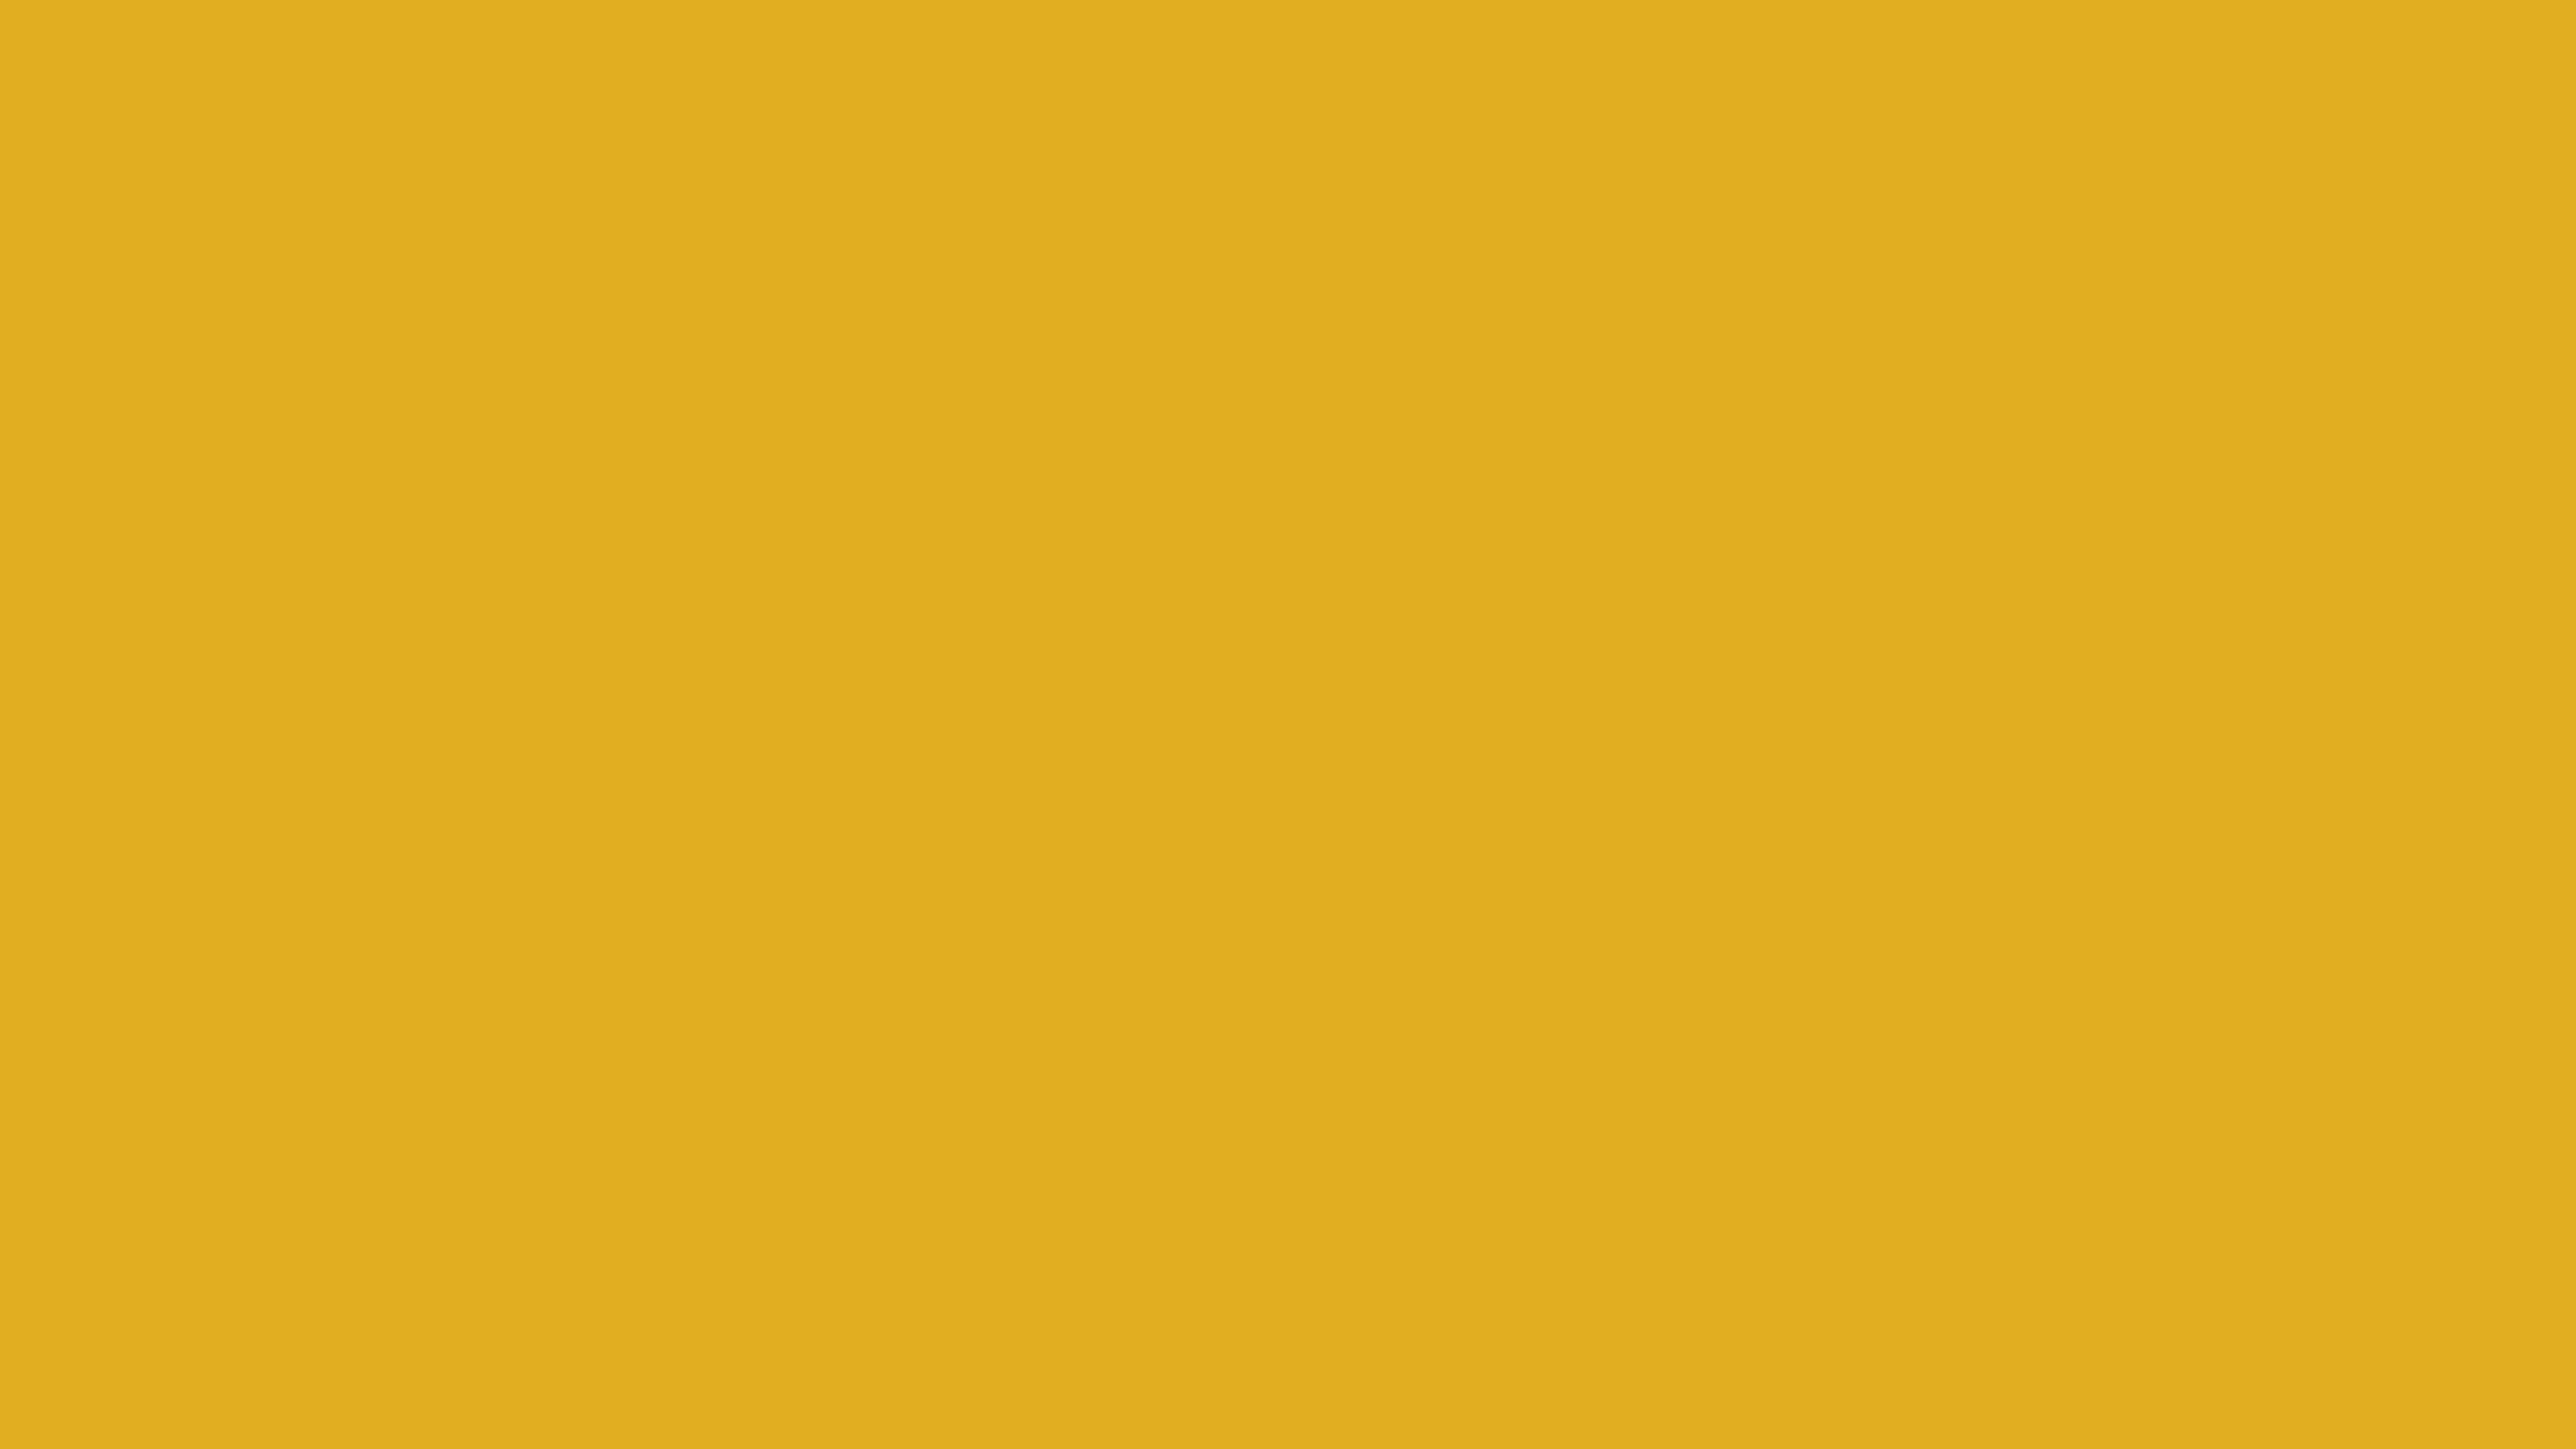 5120x2880 Urobilin Solid Color Background